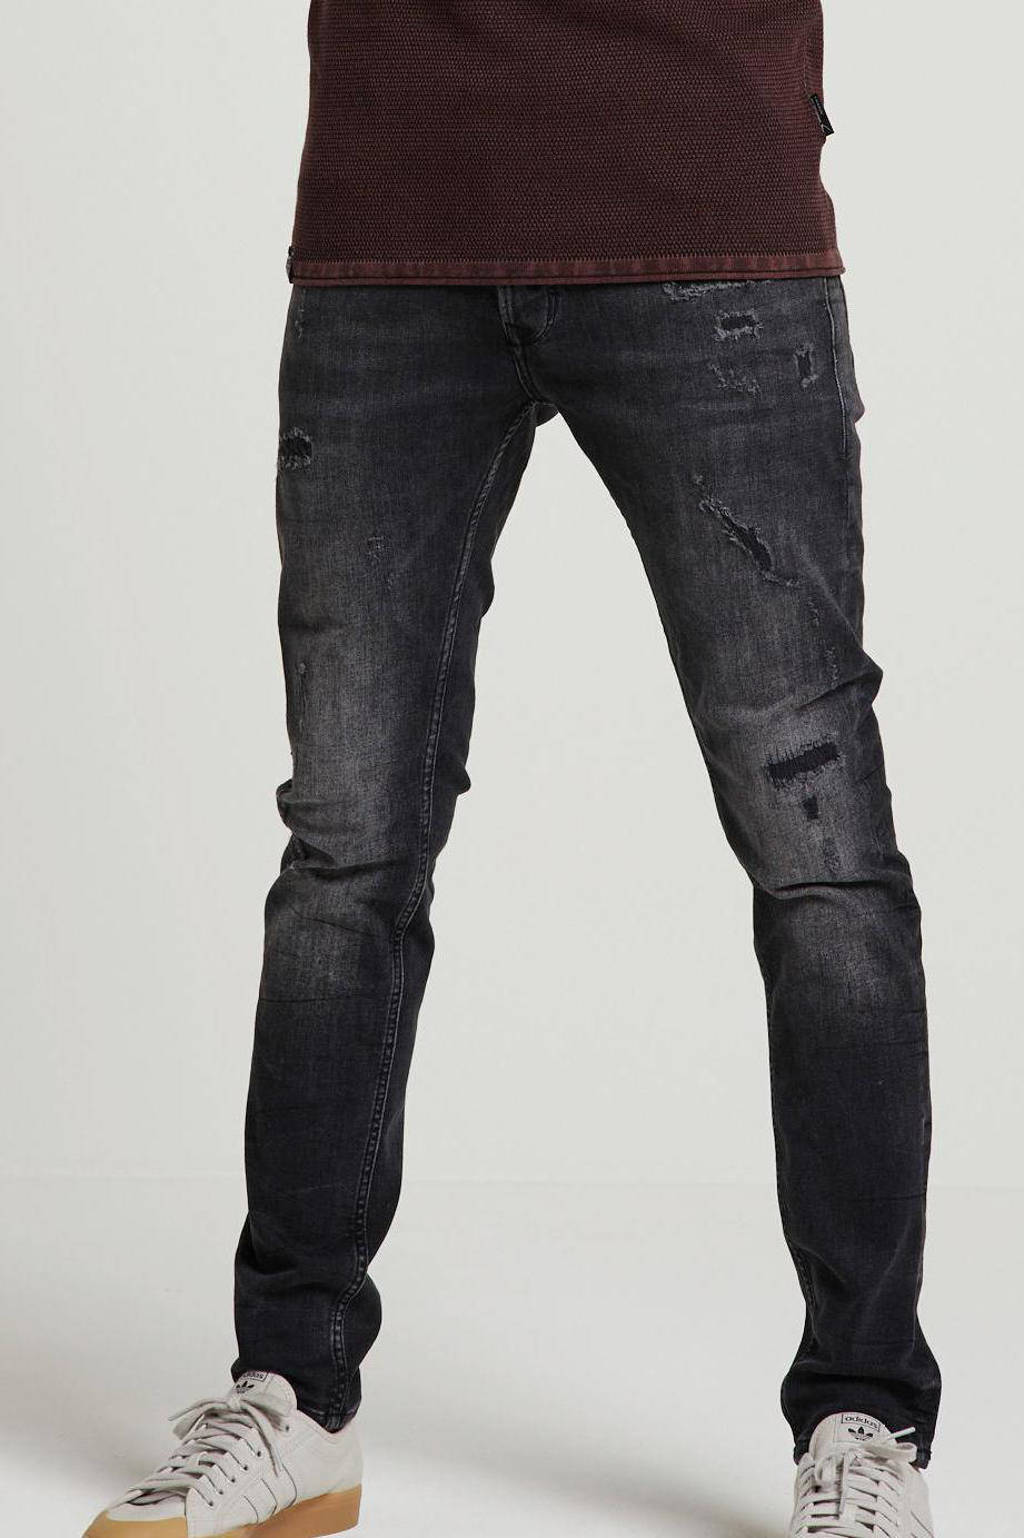 Chasin' slim fit jeans EGO COLOMBO, E00